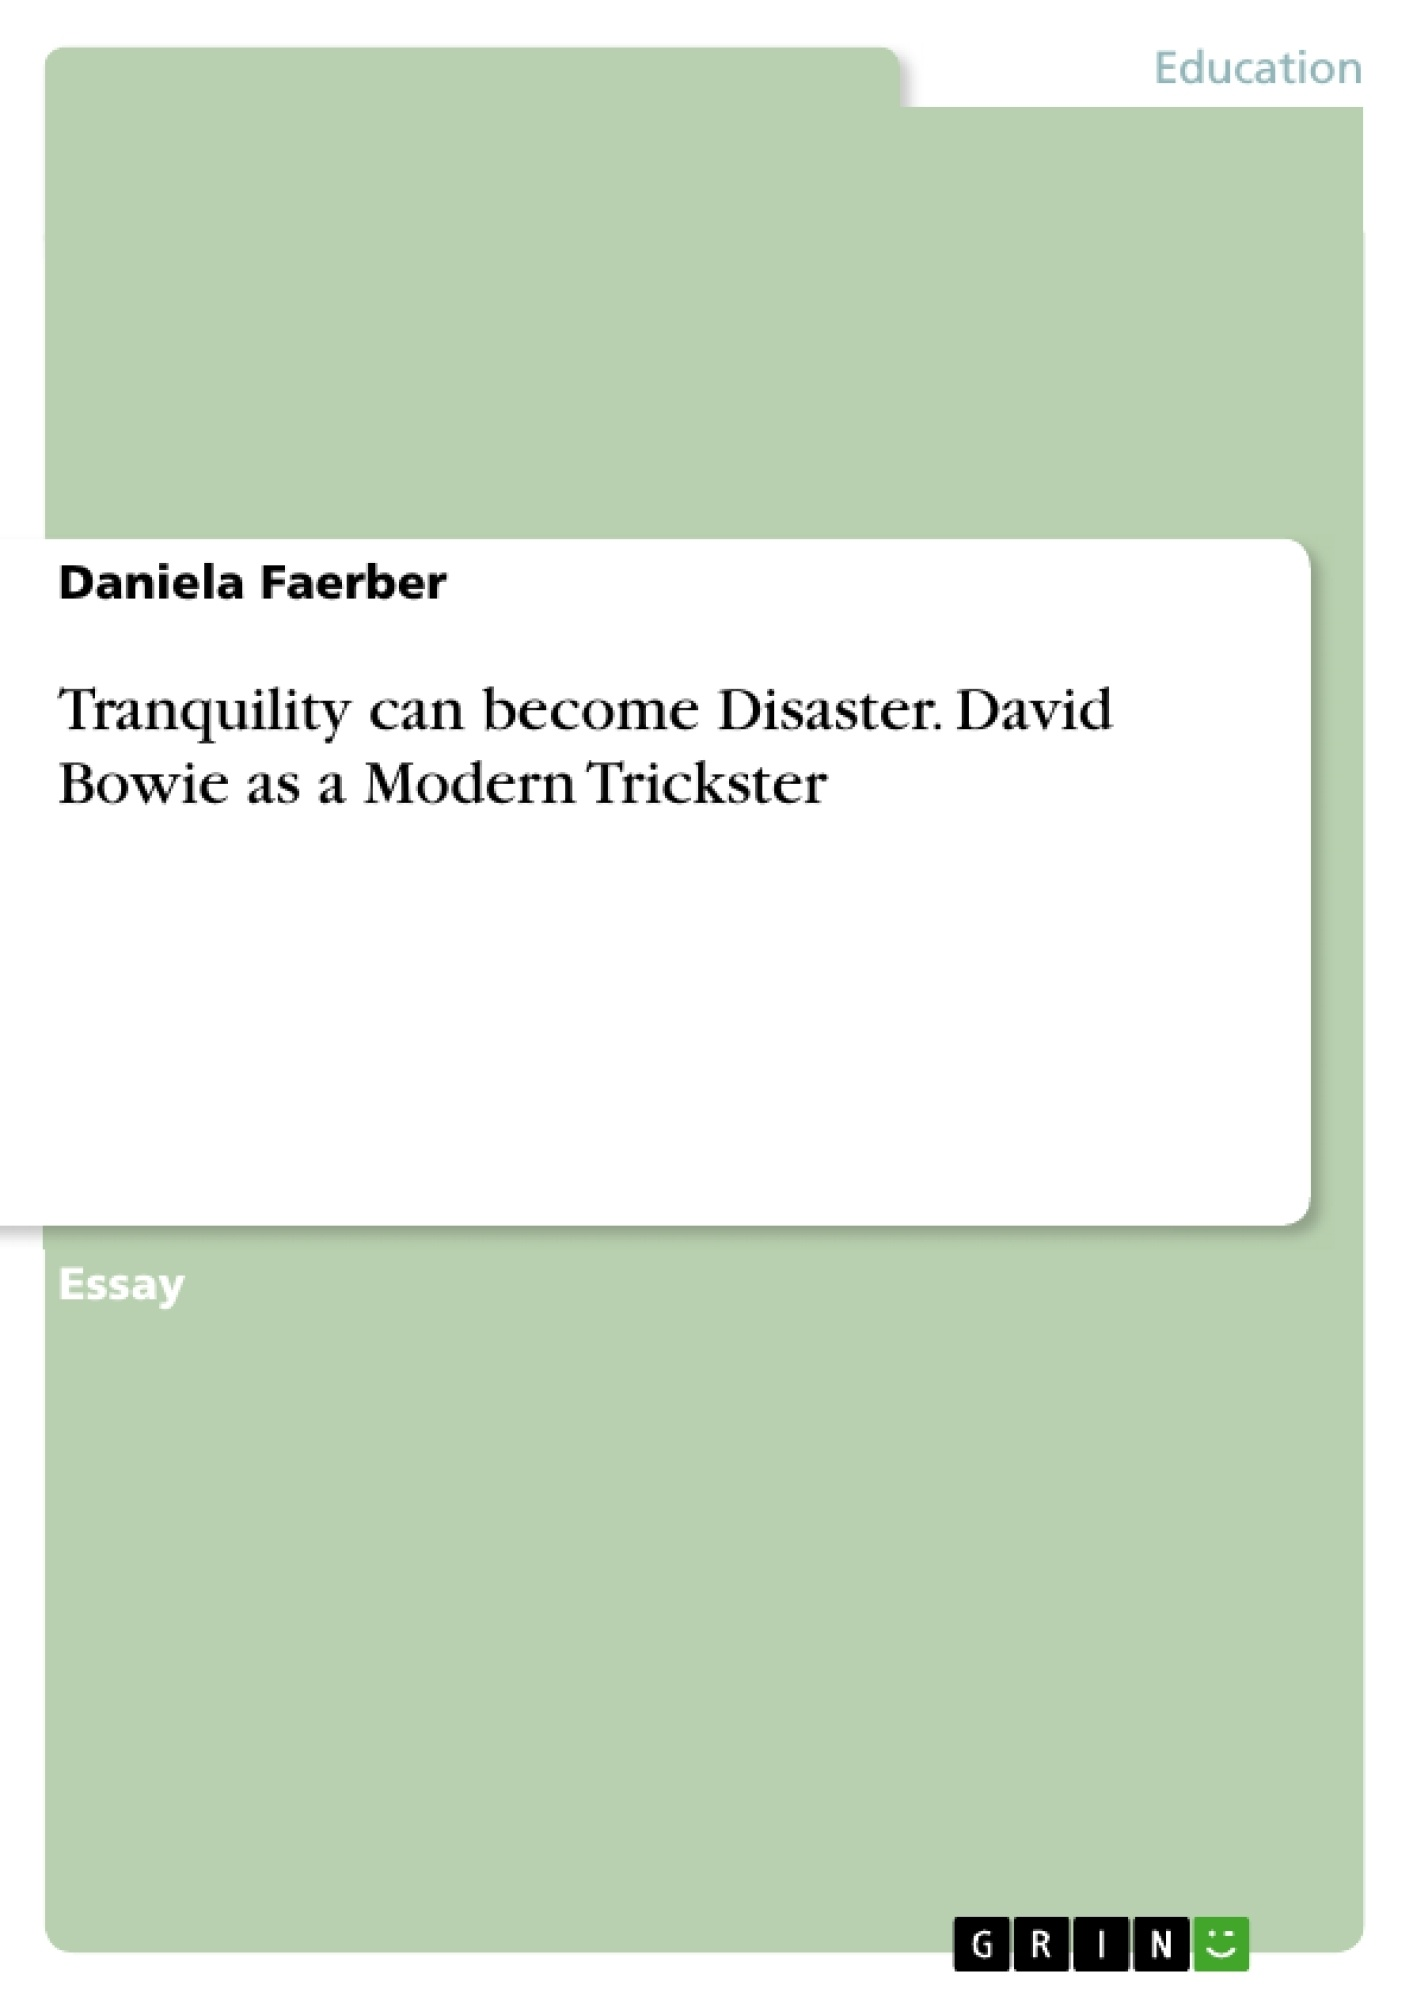 Title: Tranquility can become Disaster. David Bowie as a Modern Trickster